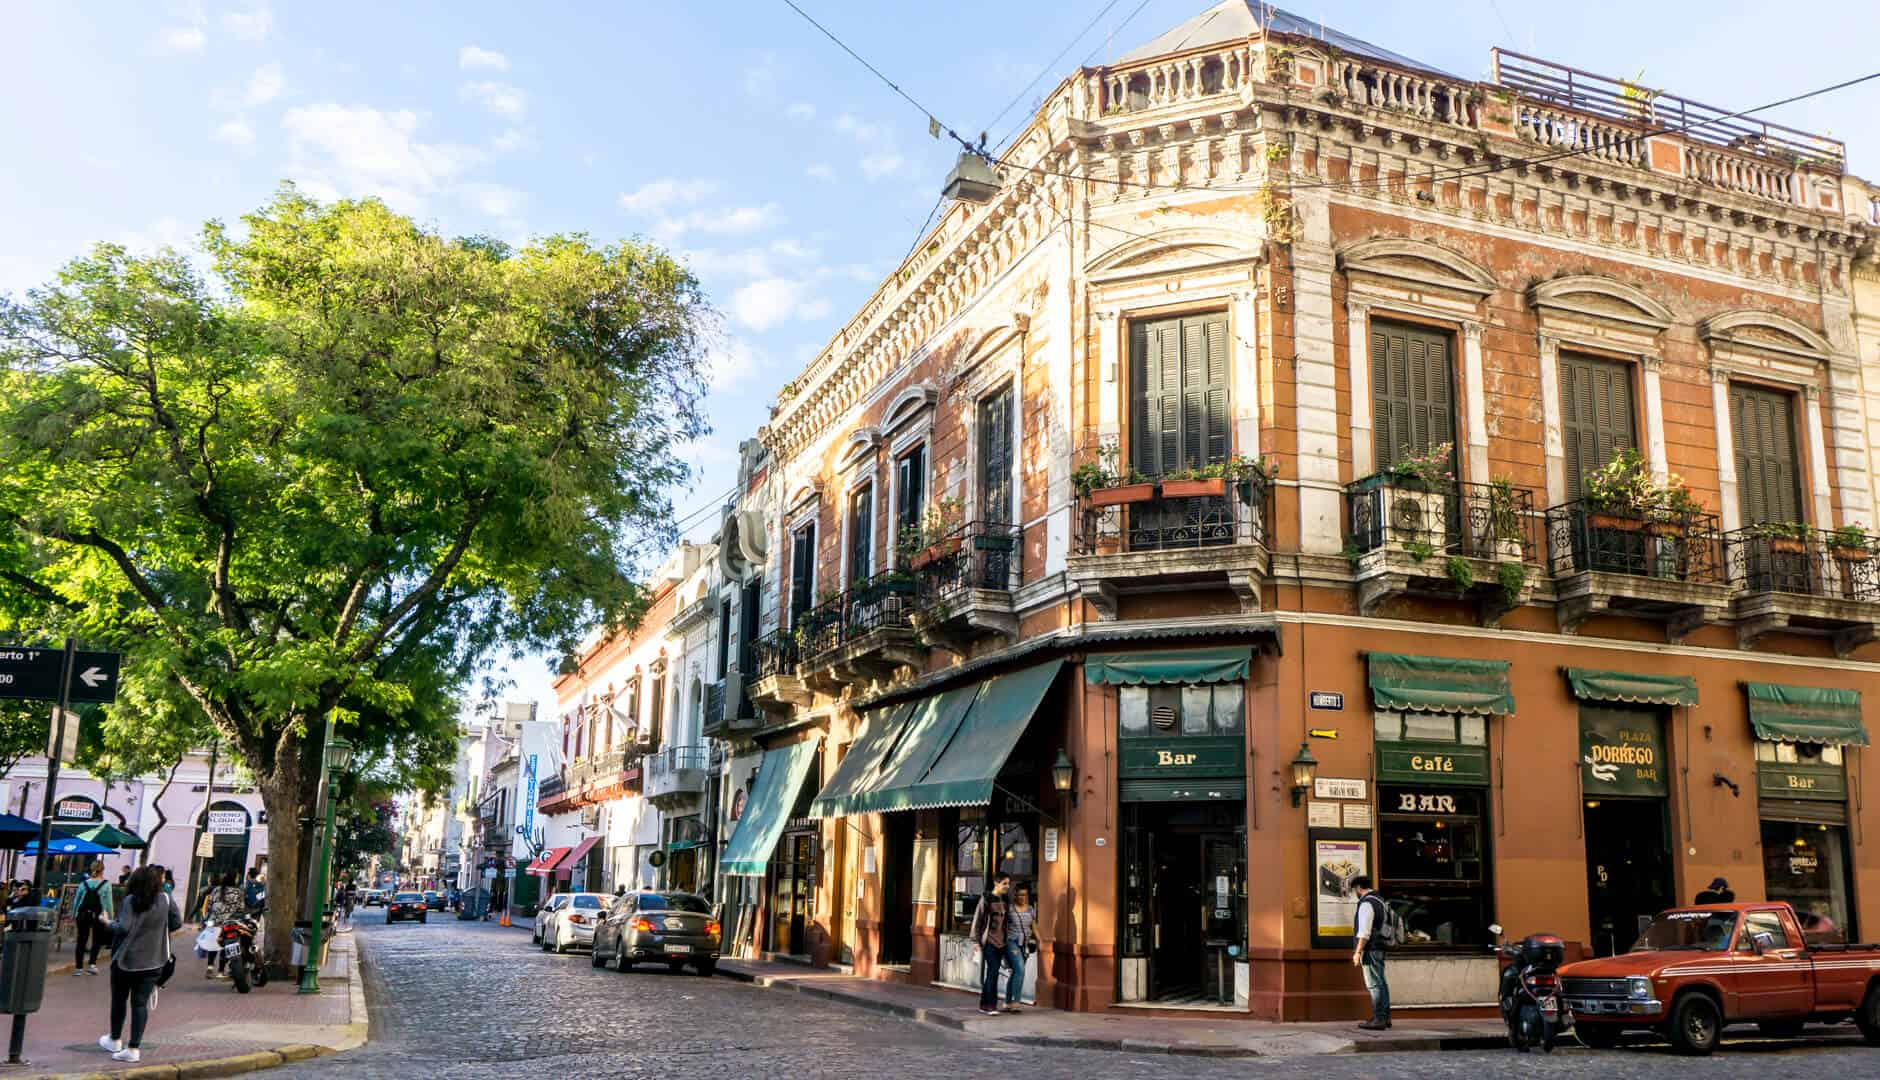 Streets of San Telmo, Buenos Aires